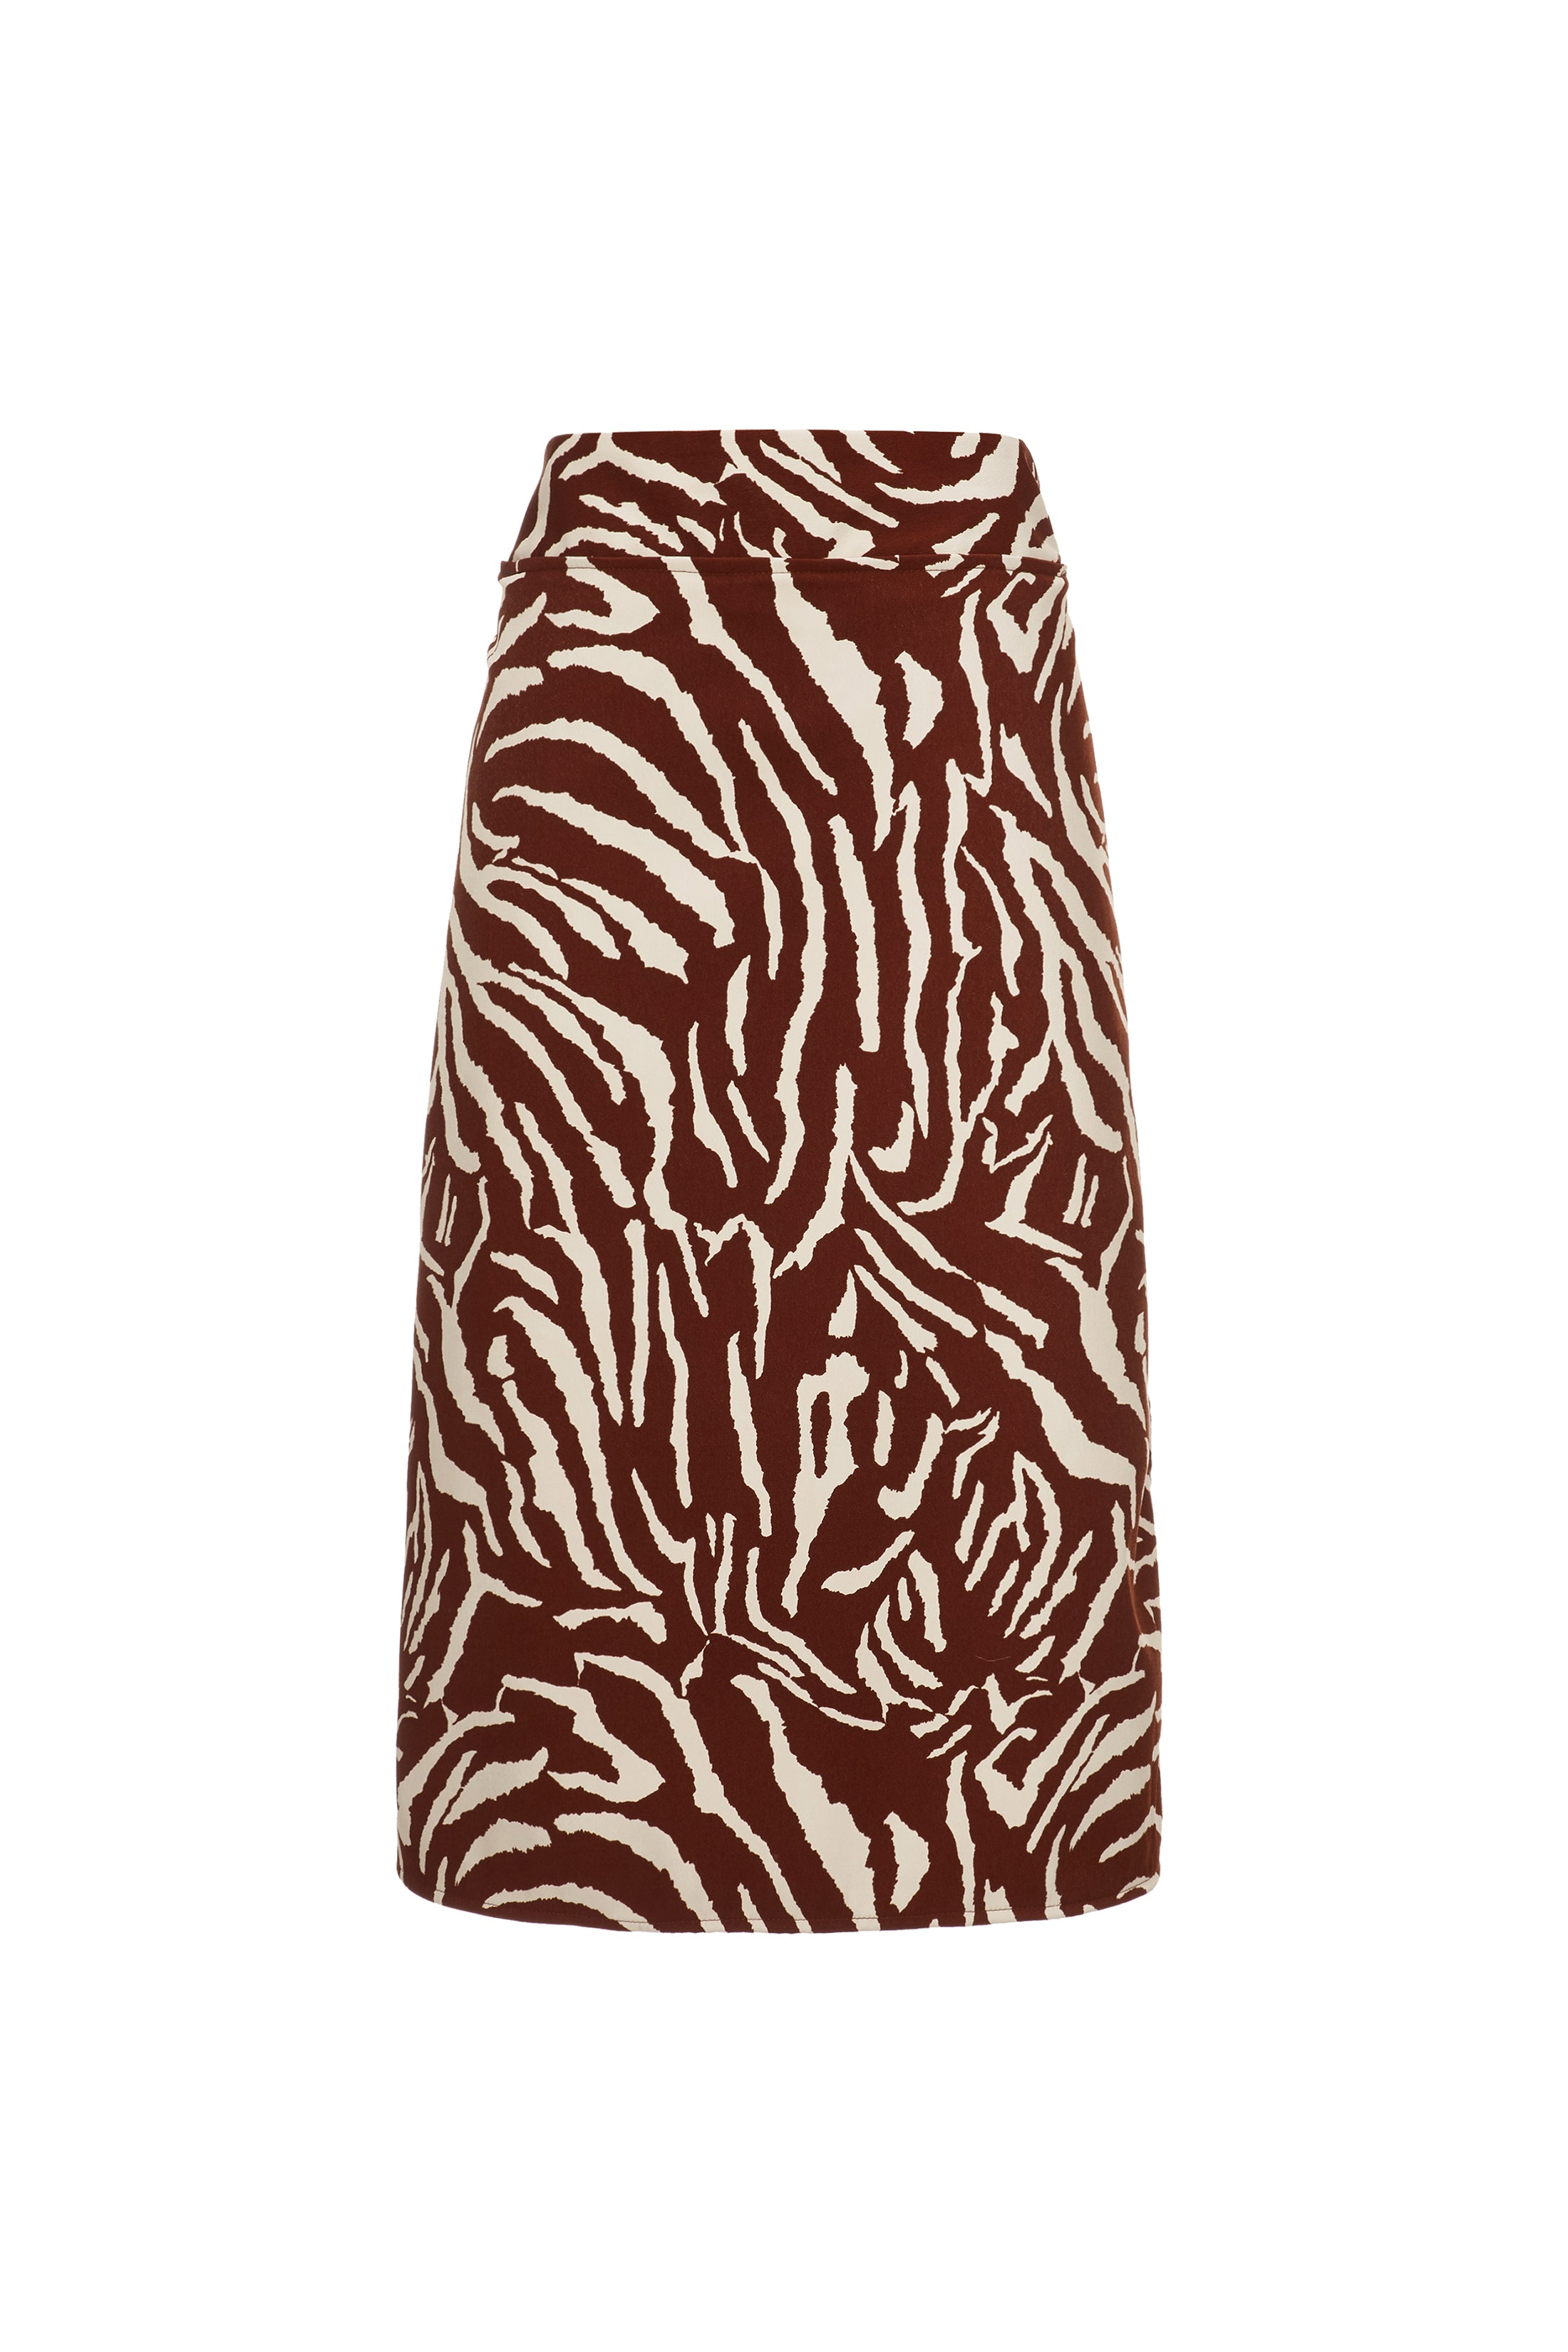 BISSAU SKIRT BROWN